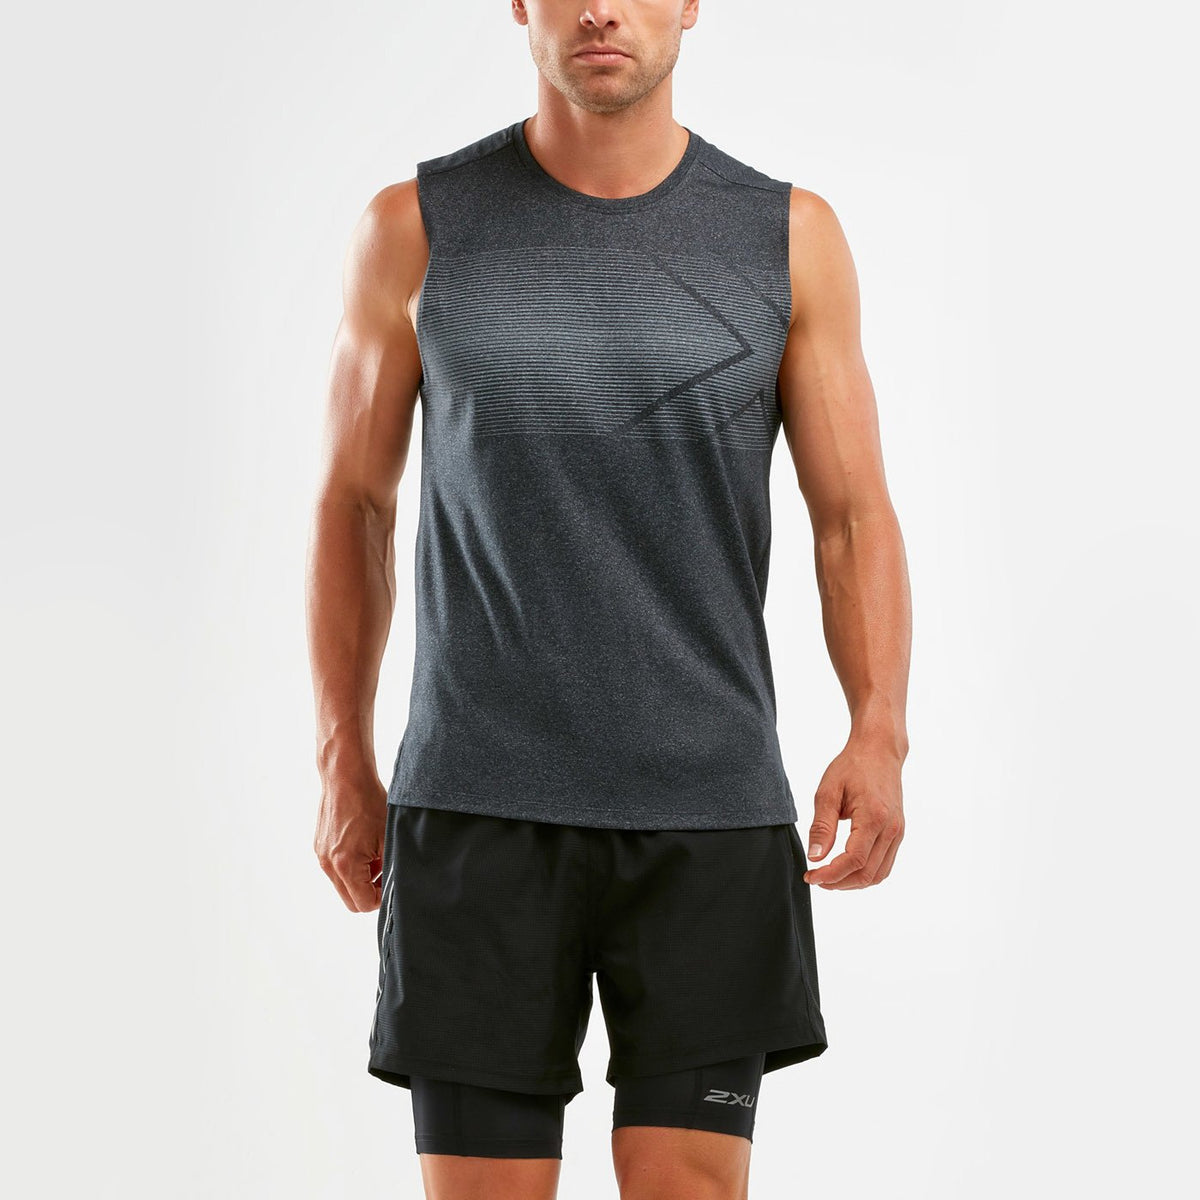 2XU Training Tank MENS - Sole Motive